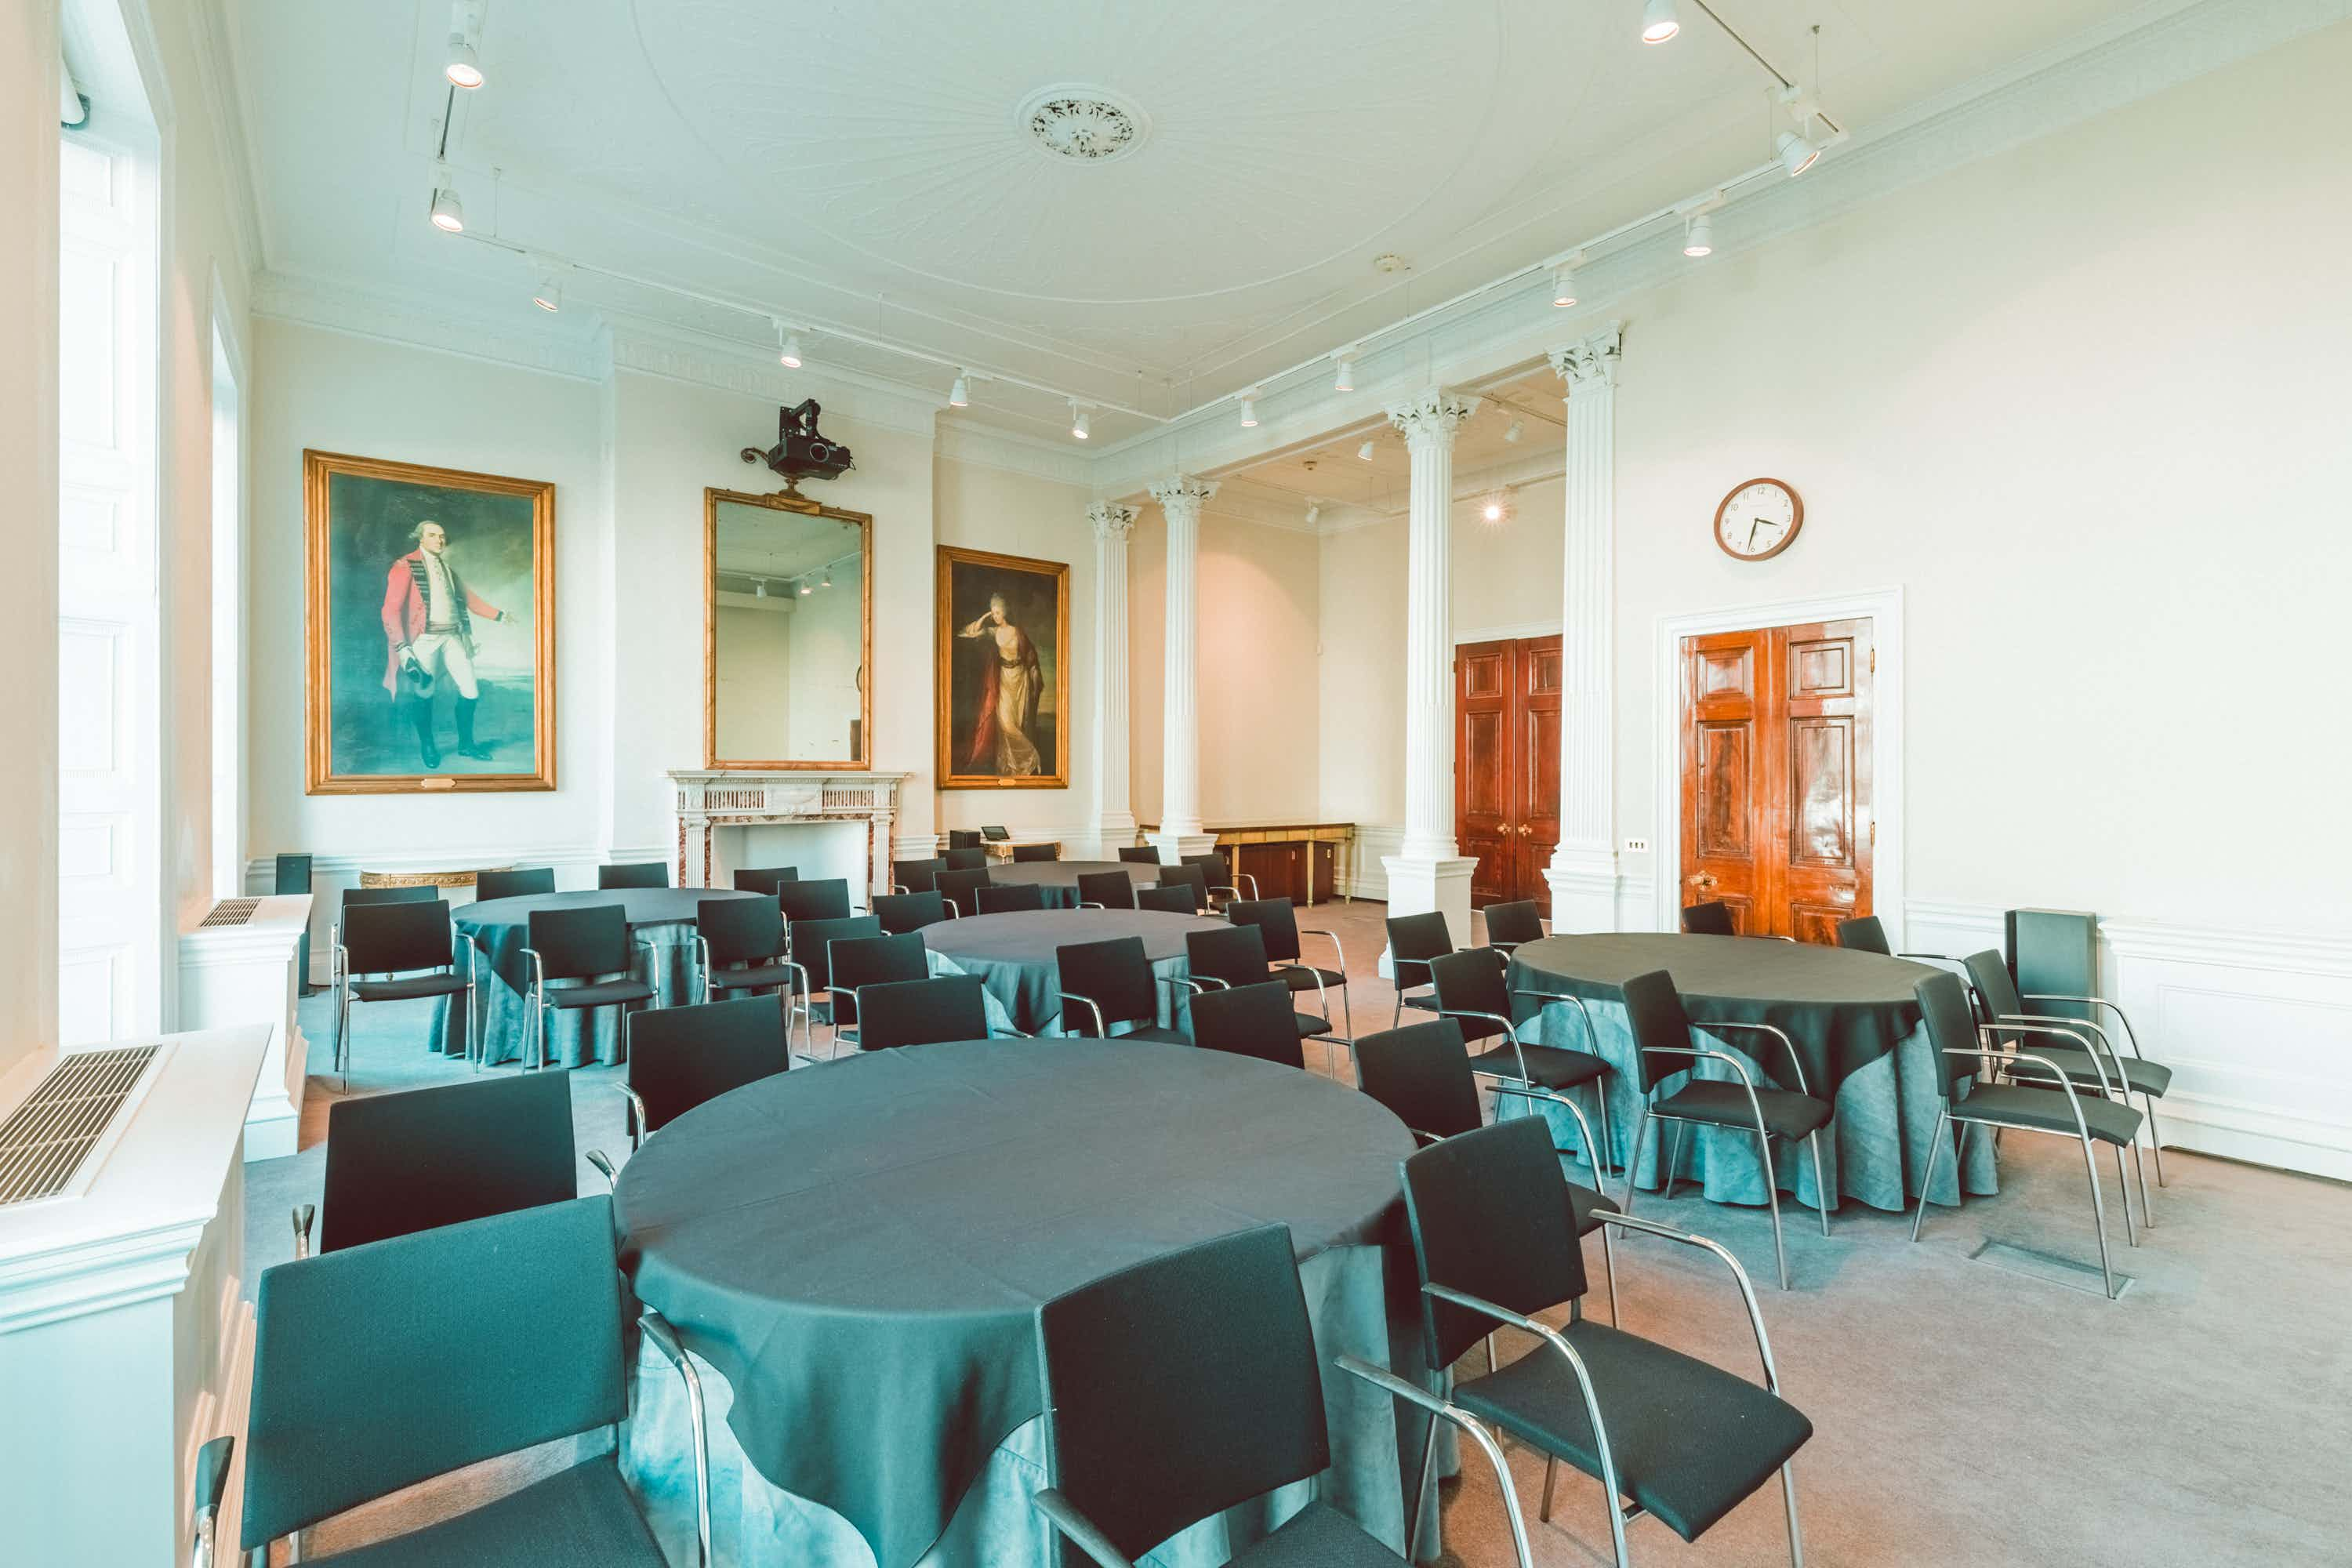 Council Chamber and Reception Room, 41 Portland Place